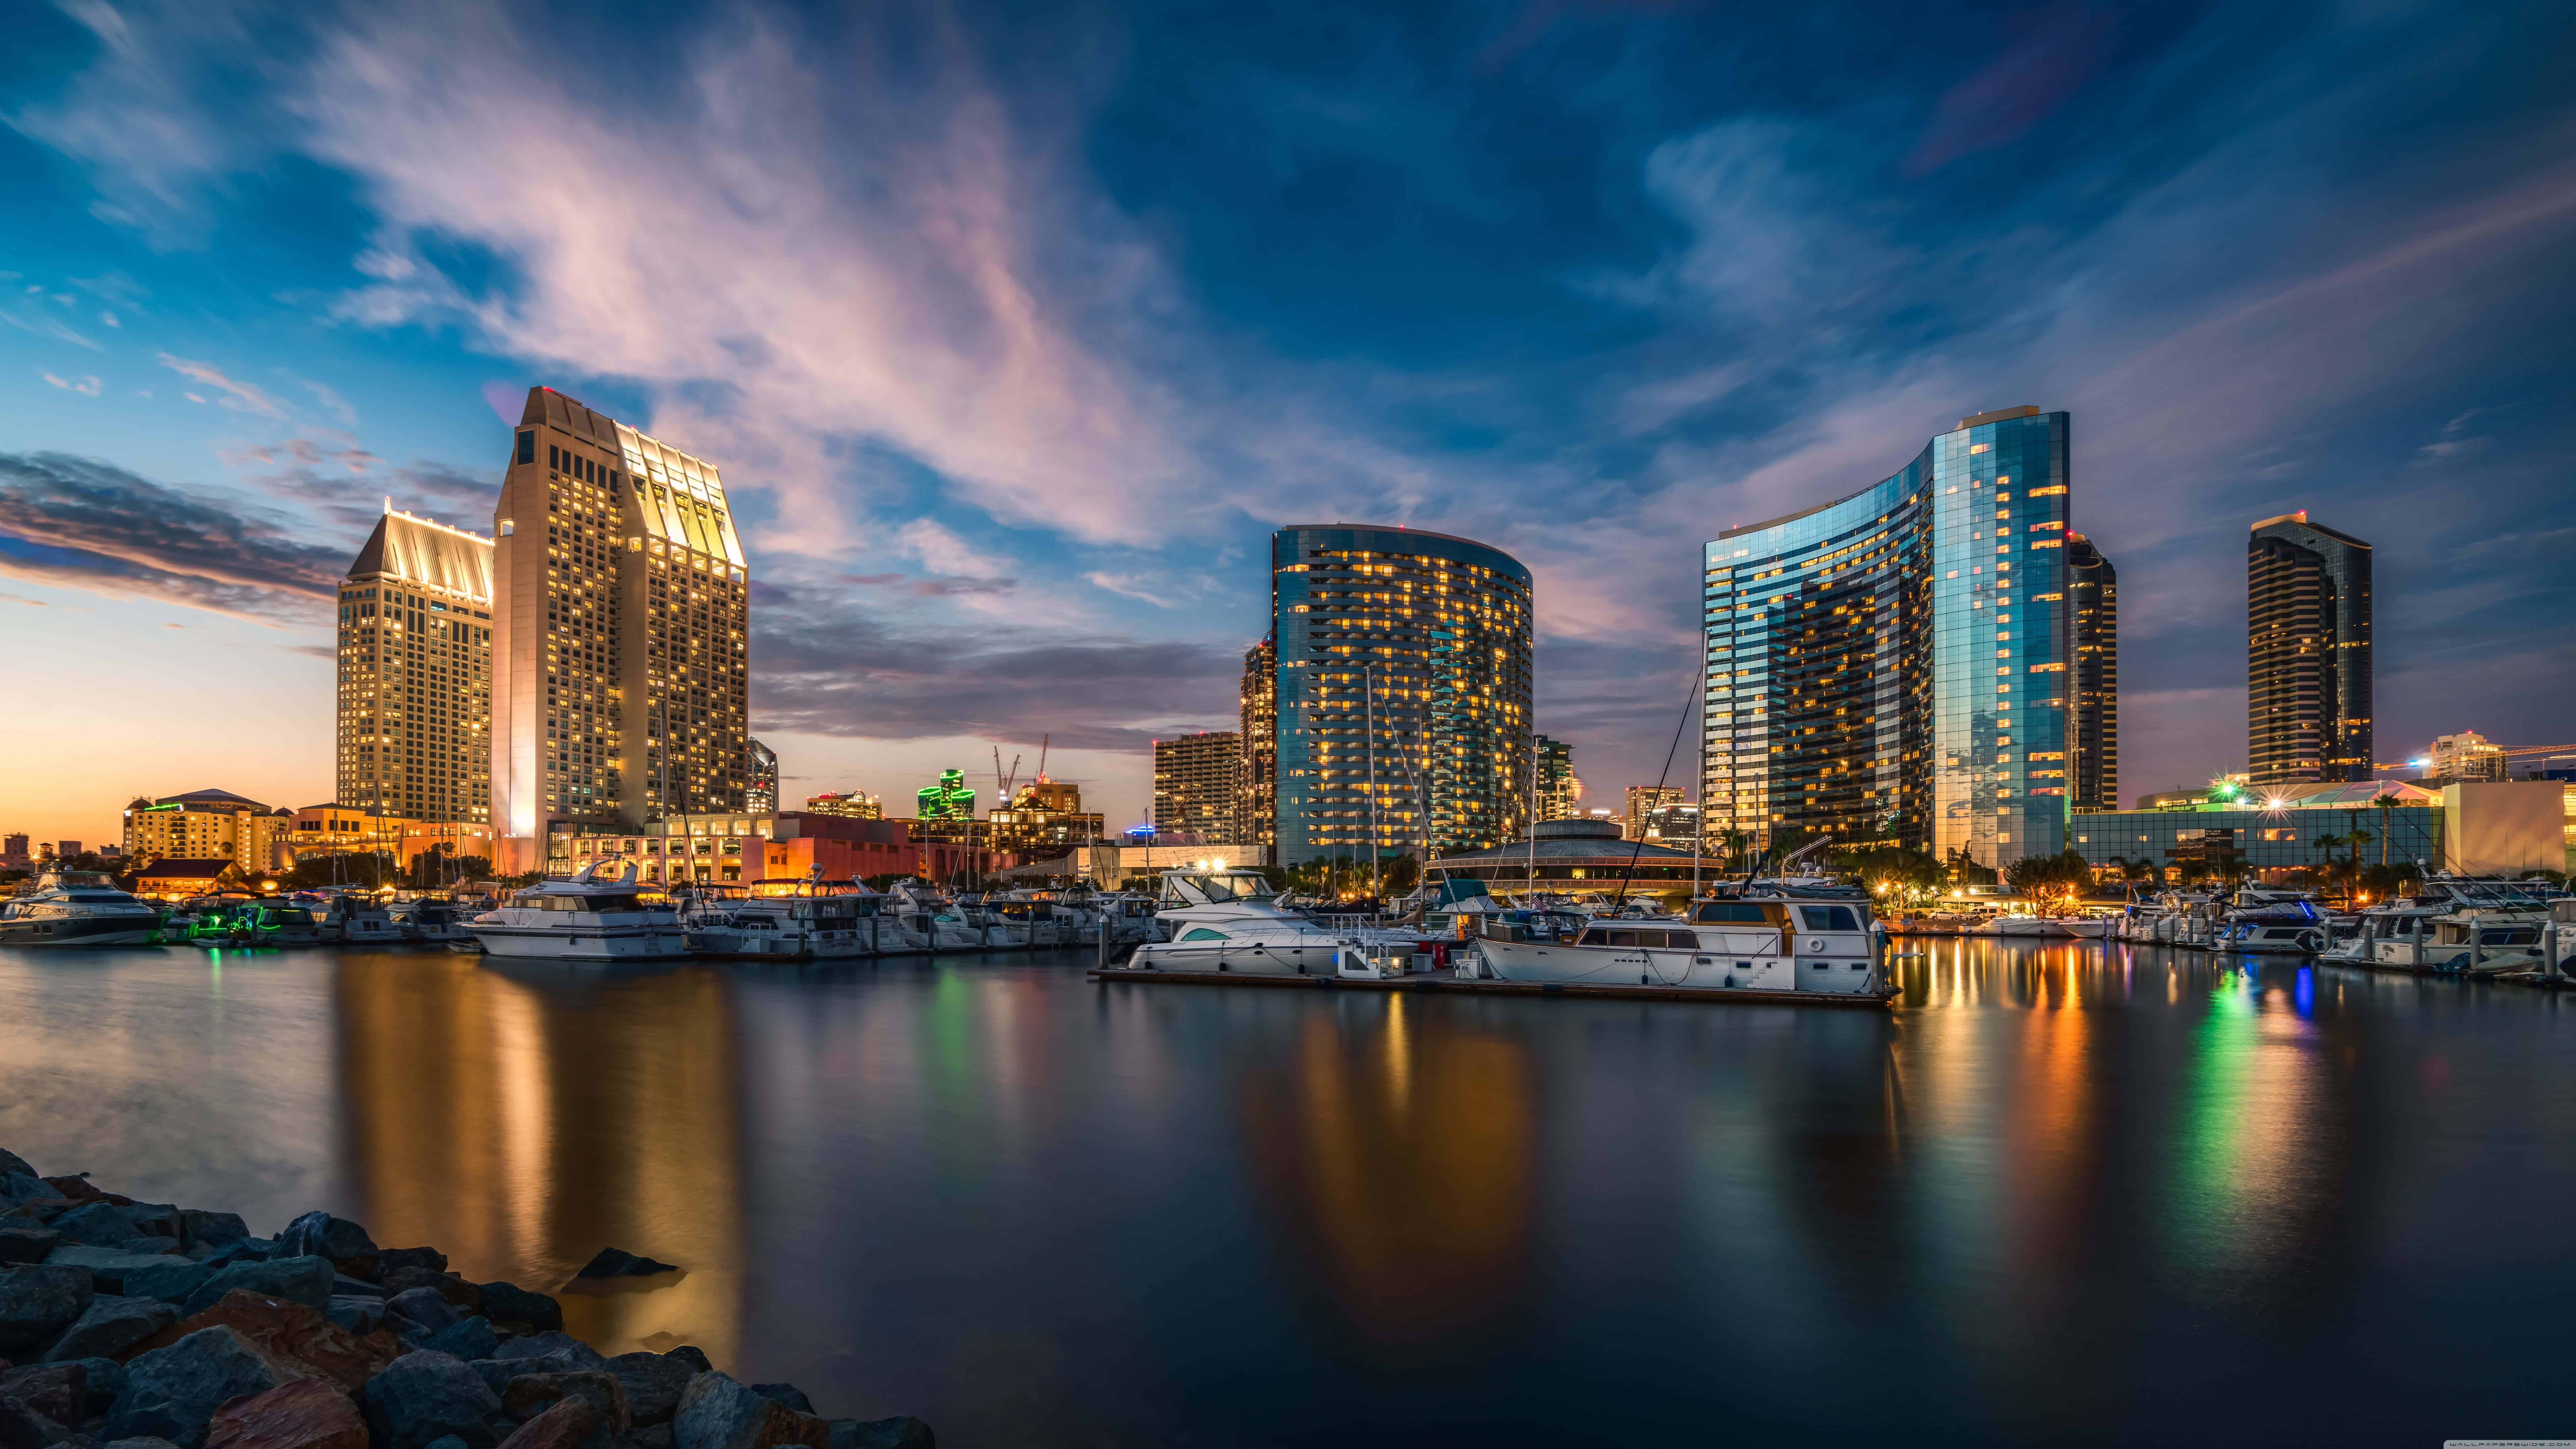 San Diego 4K Wallpapers - Top Free San Diego 4K Backgrounds -  WallpaperAccess